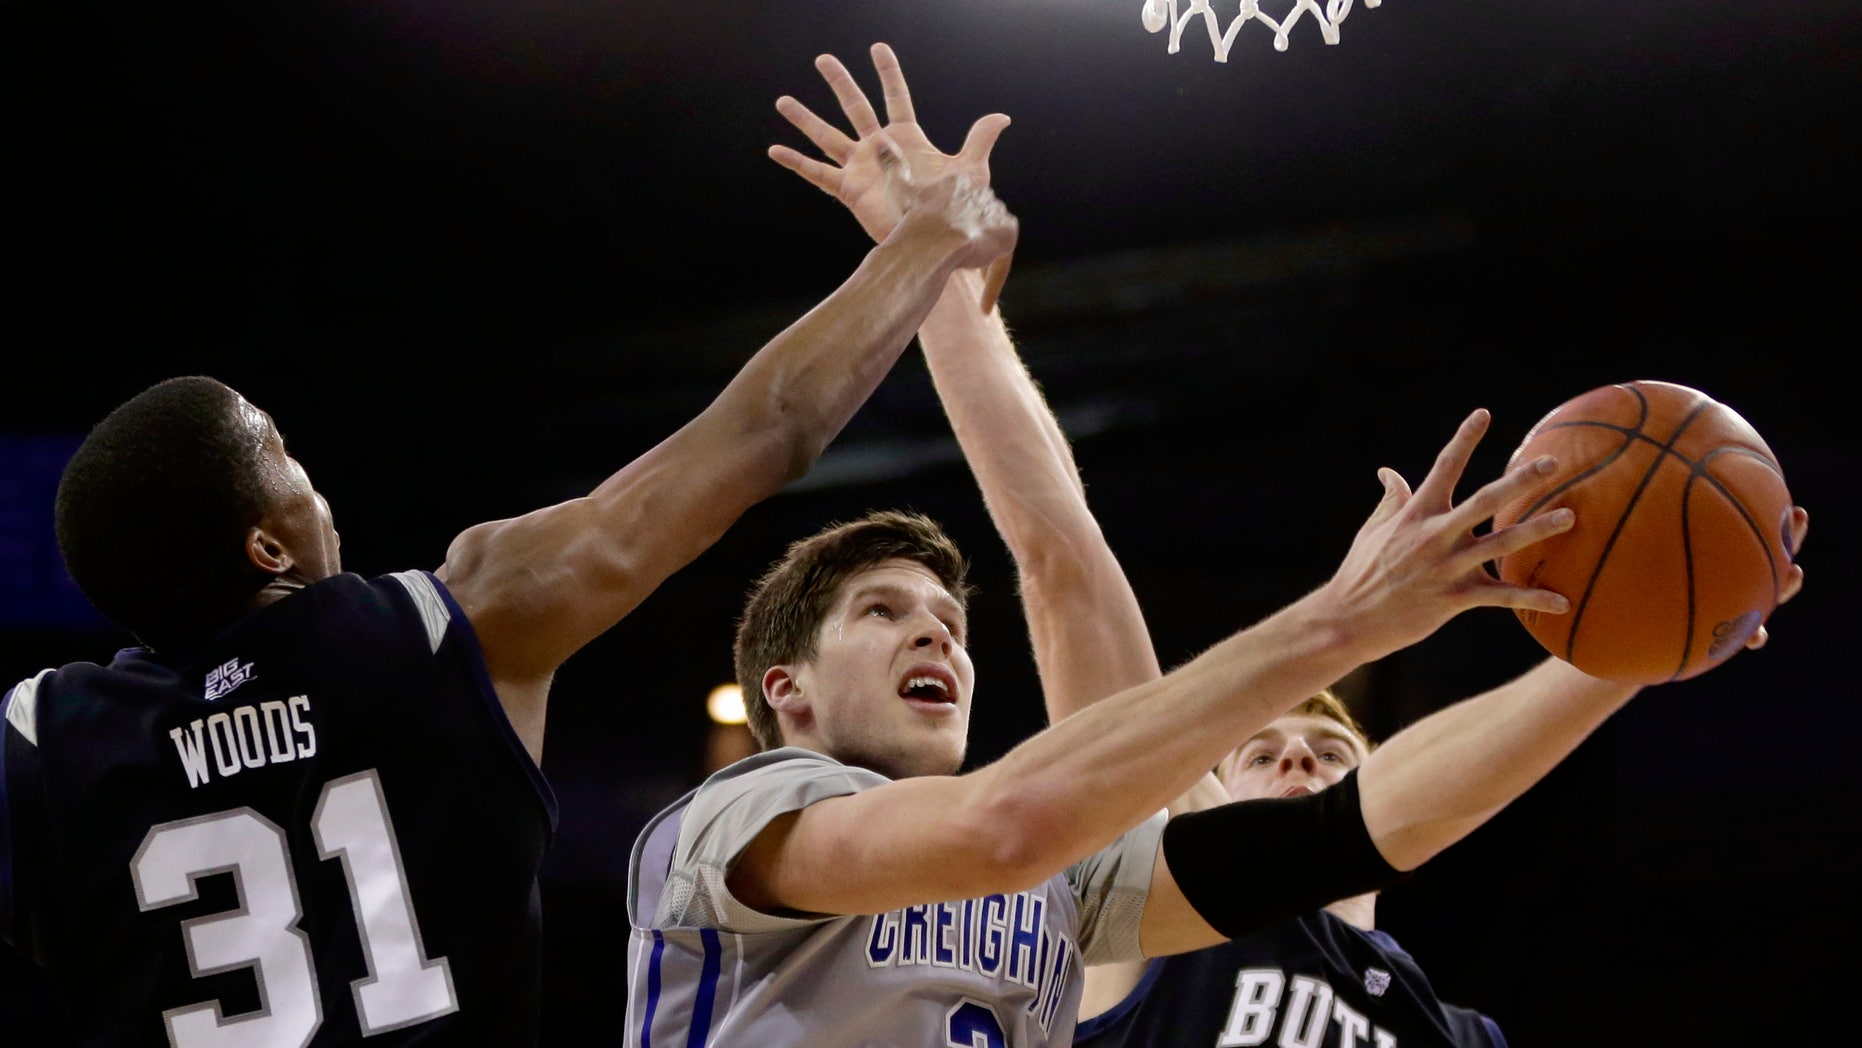 Creighton's Doug McDermott (3) goes for a layup against Butler's Kameron Woods (31) and Erik Fromm (4) in the second half of an NCAA college basketball game in Omaha, Neb., Tuesday, Jan. 14, 2014. Creighton won 88-60. (AP Photo/Nati Harnik)